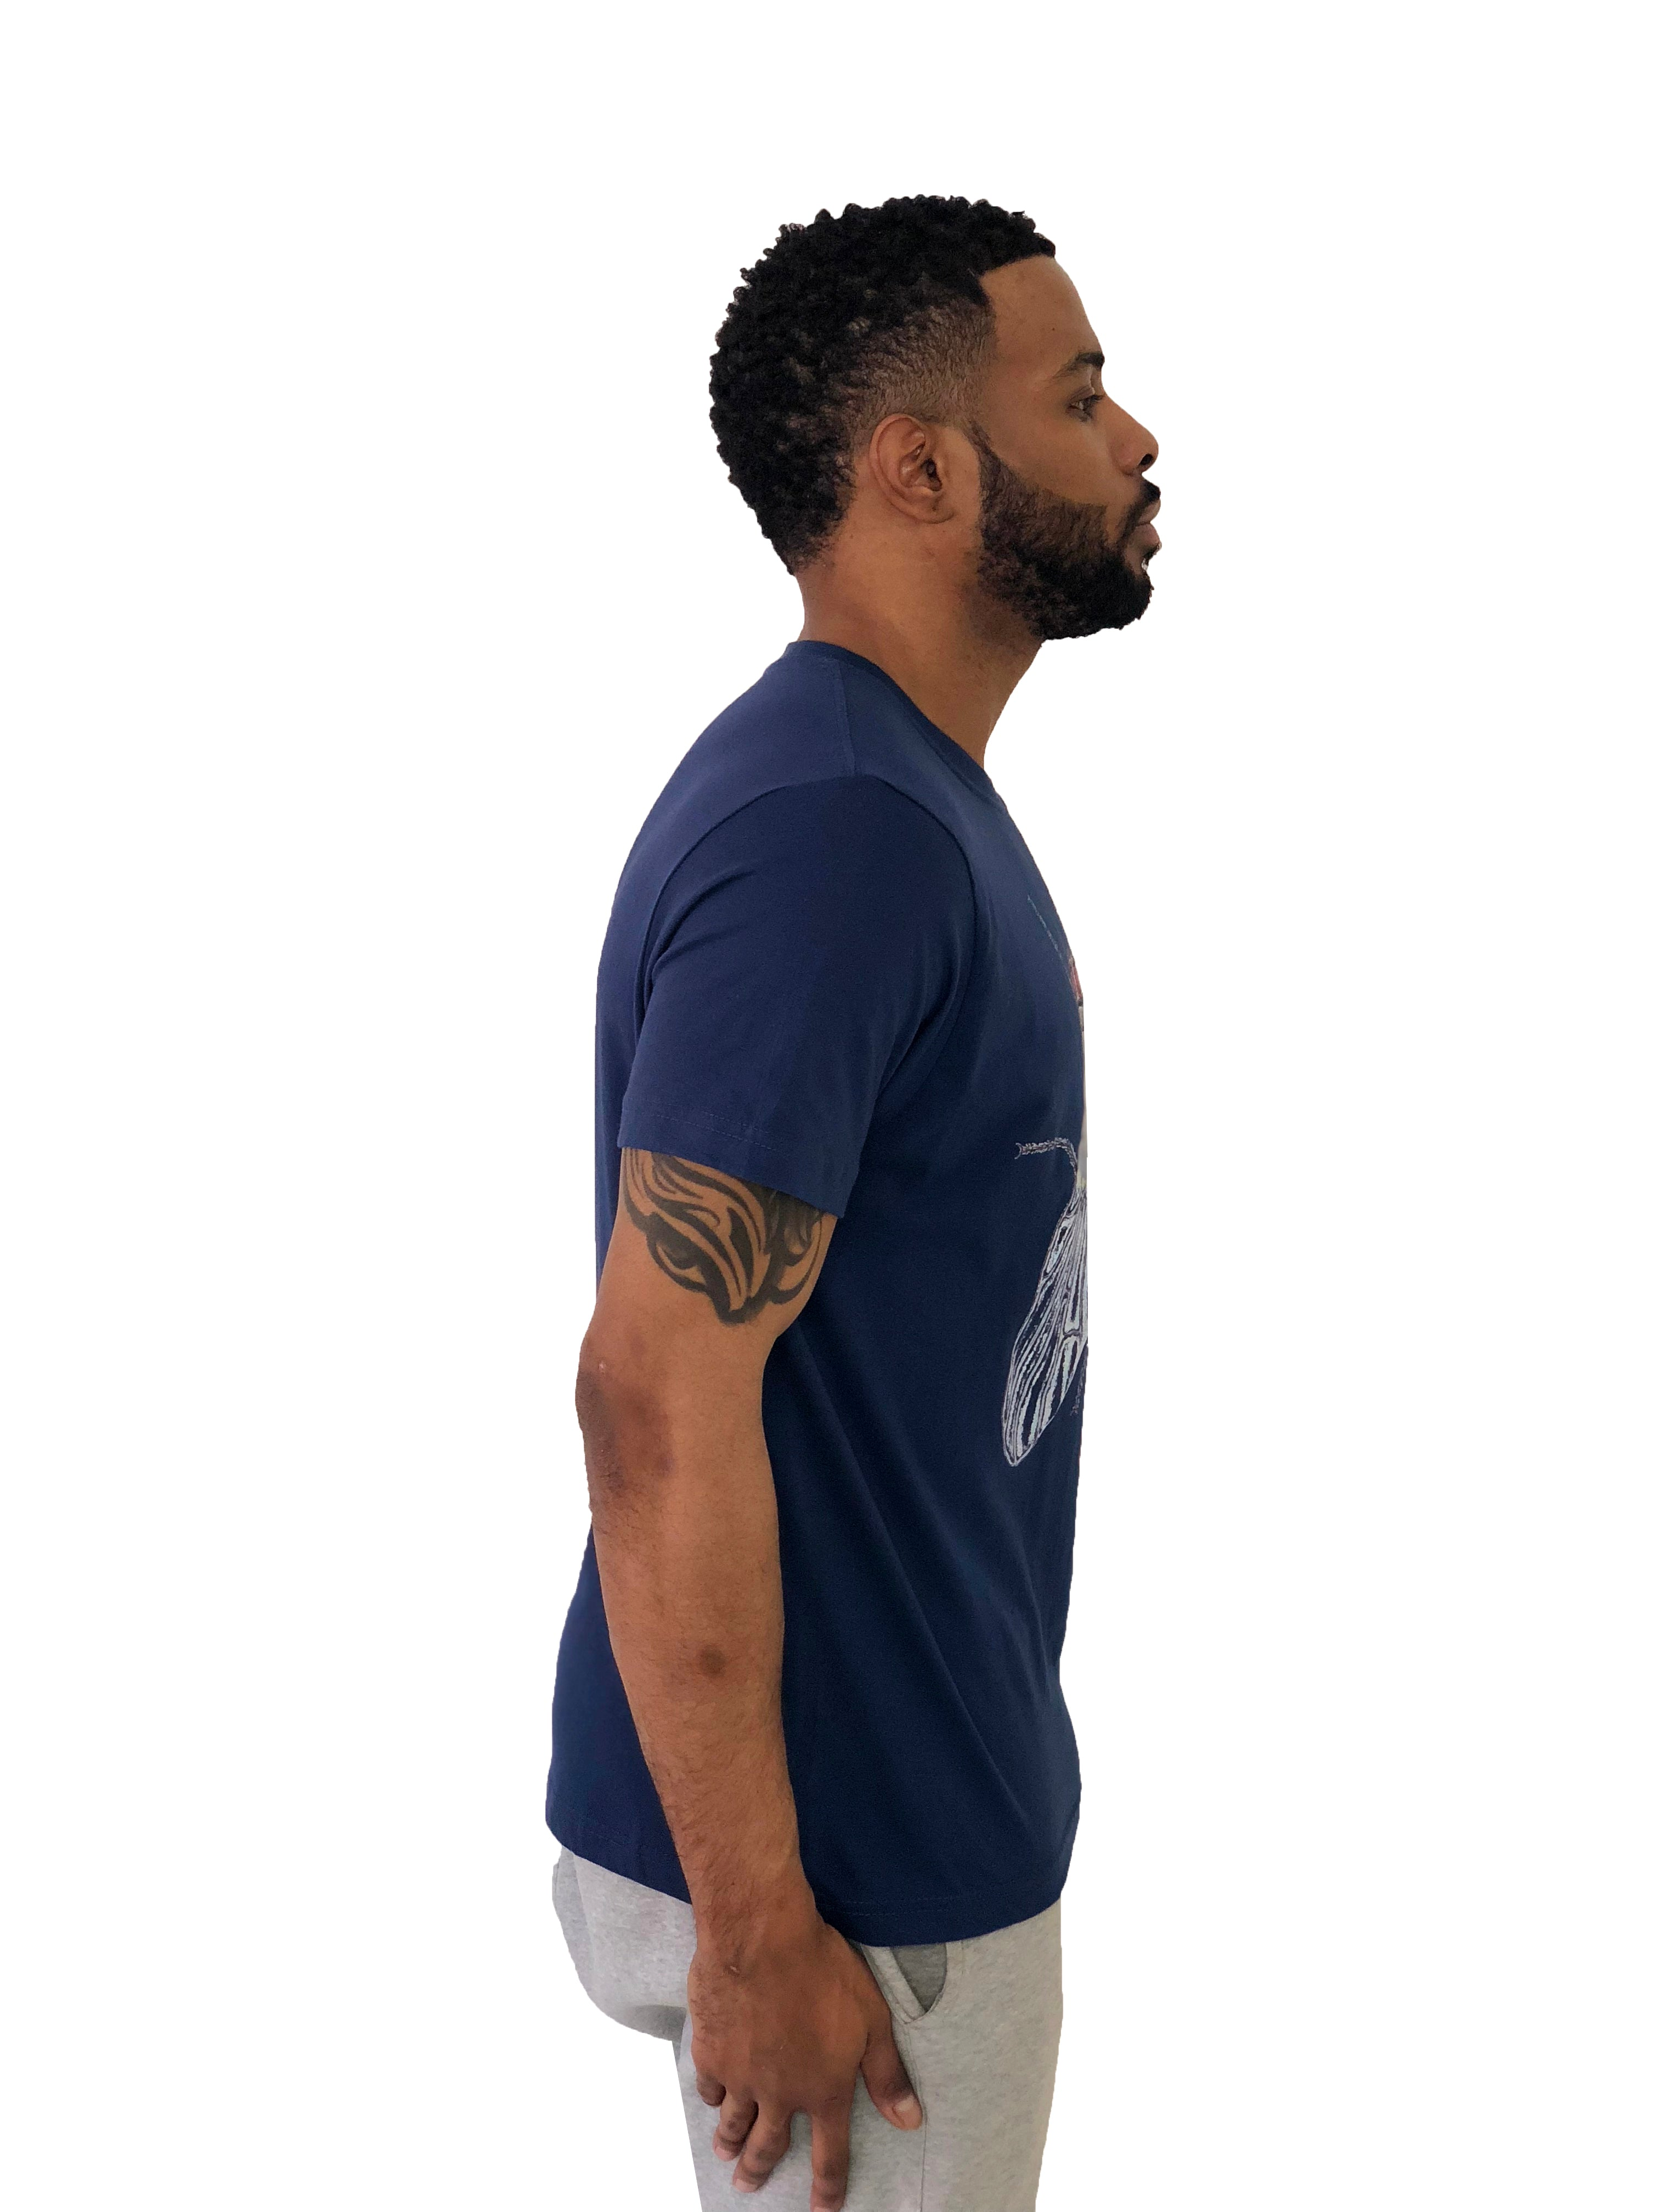 "Men T-Shirt ""Fly"" Short Sleeved Navy Blue by iacobucyounes Italy - Brit Boss"